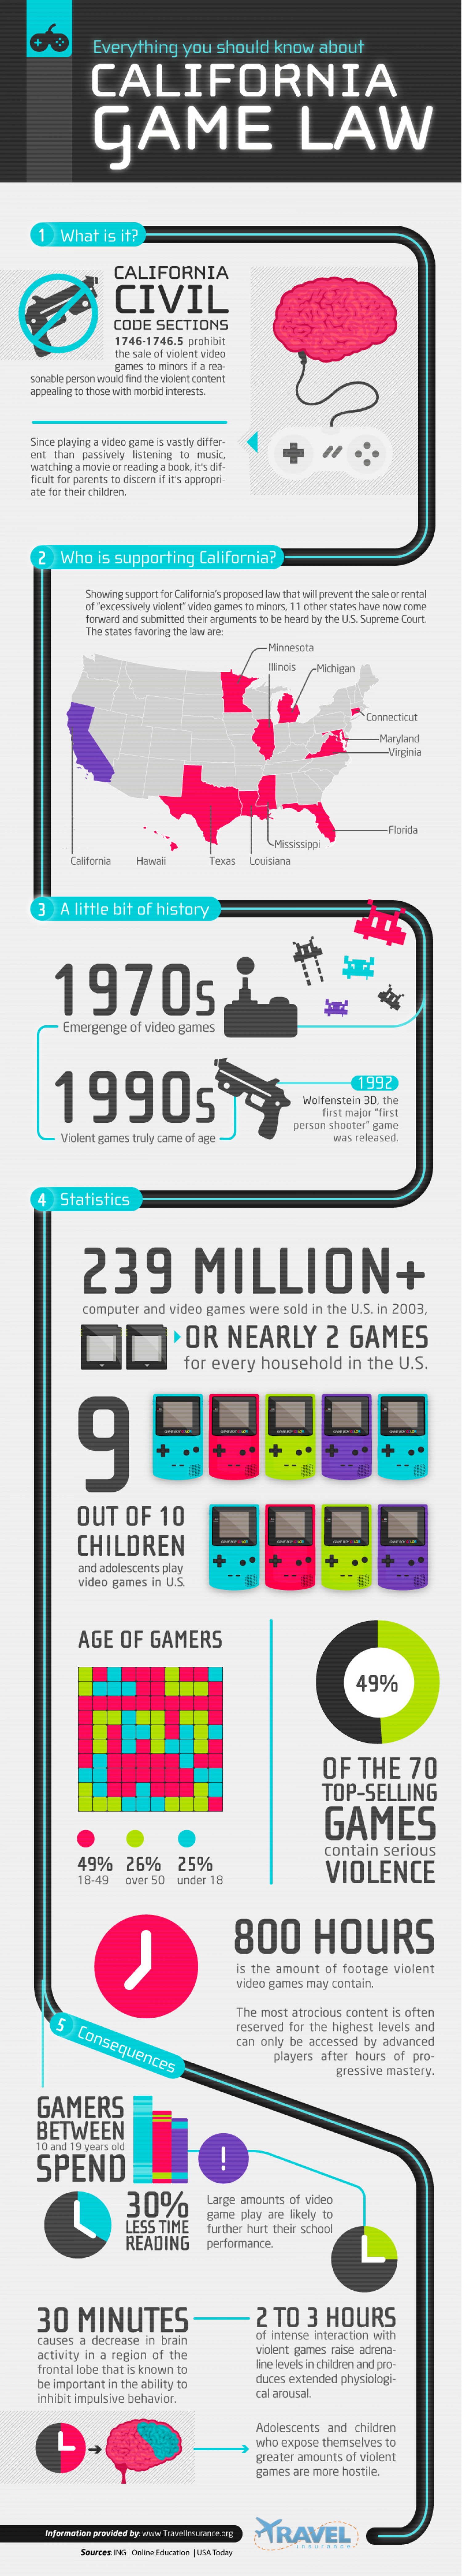 California Video Game Laws Infographic